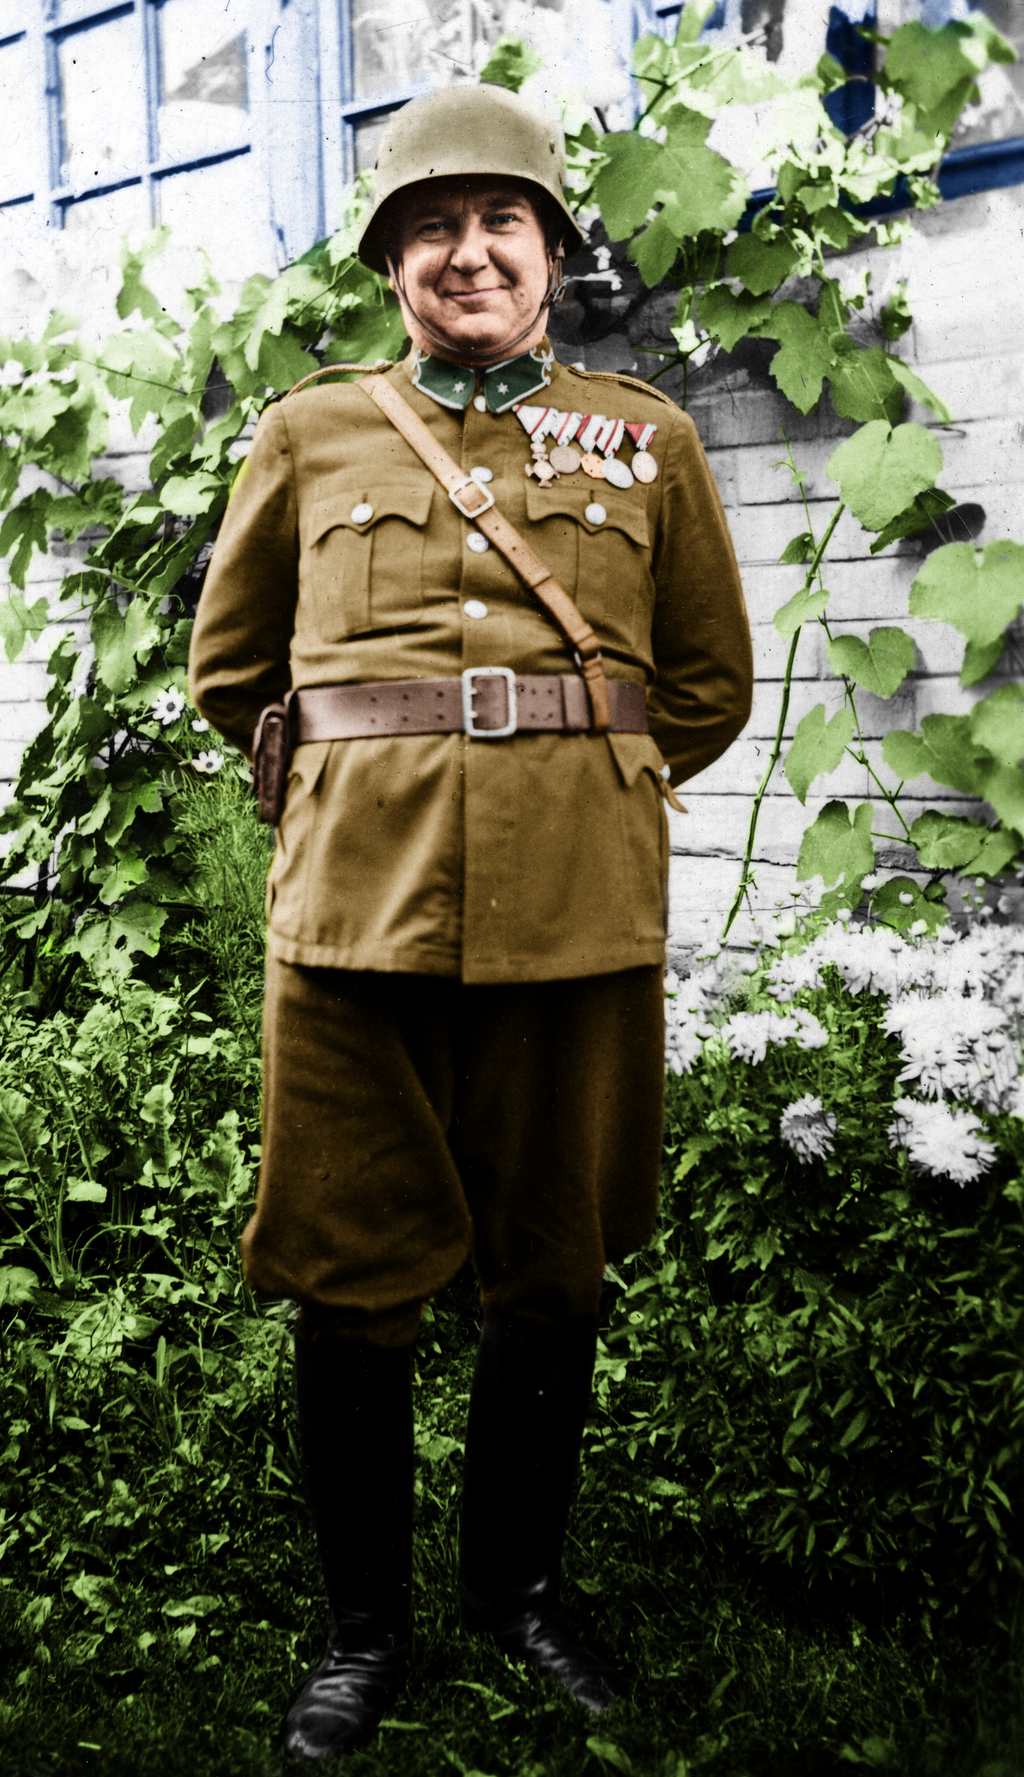 tiszt_a_kertben__officer_in_the_garden_by_greenh0rn-d7xdiry.png